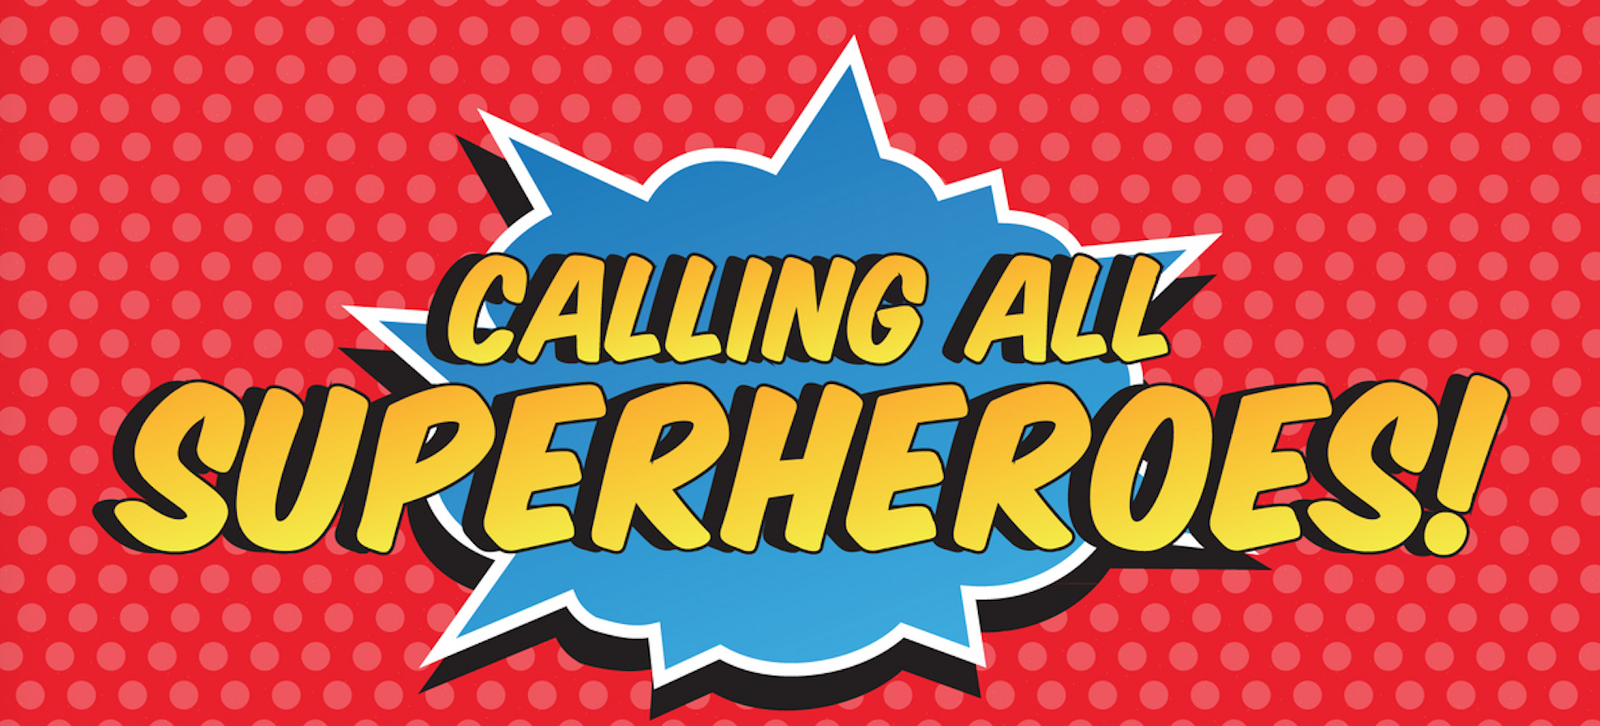 CALLING ALL SUPERHEROES! – Respond and Relapse – Medium